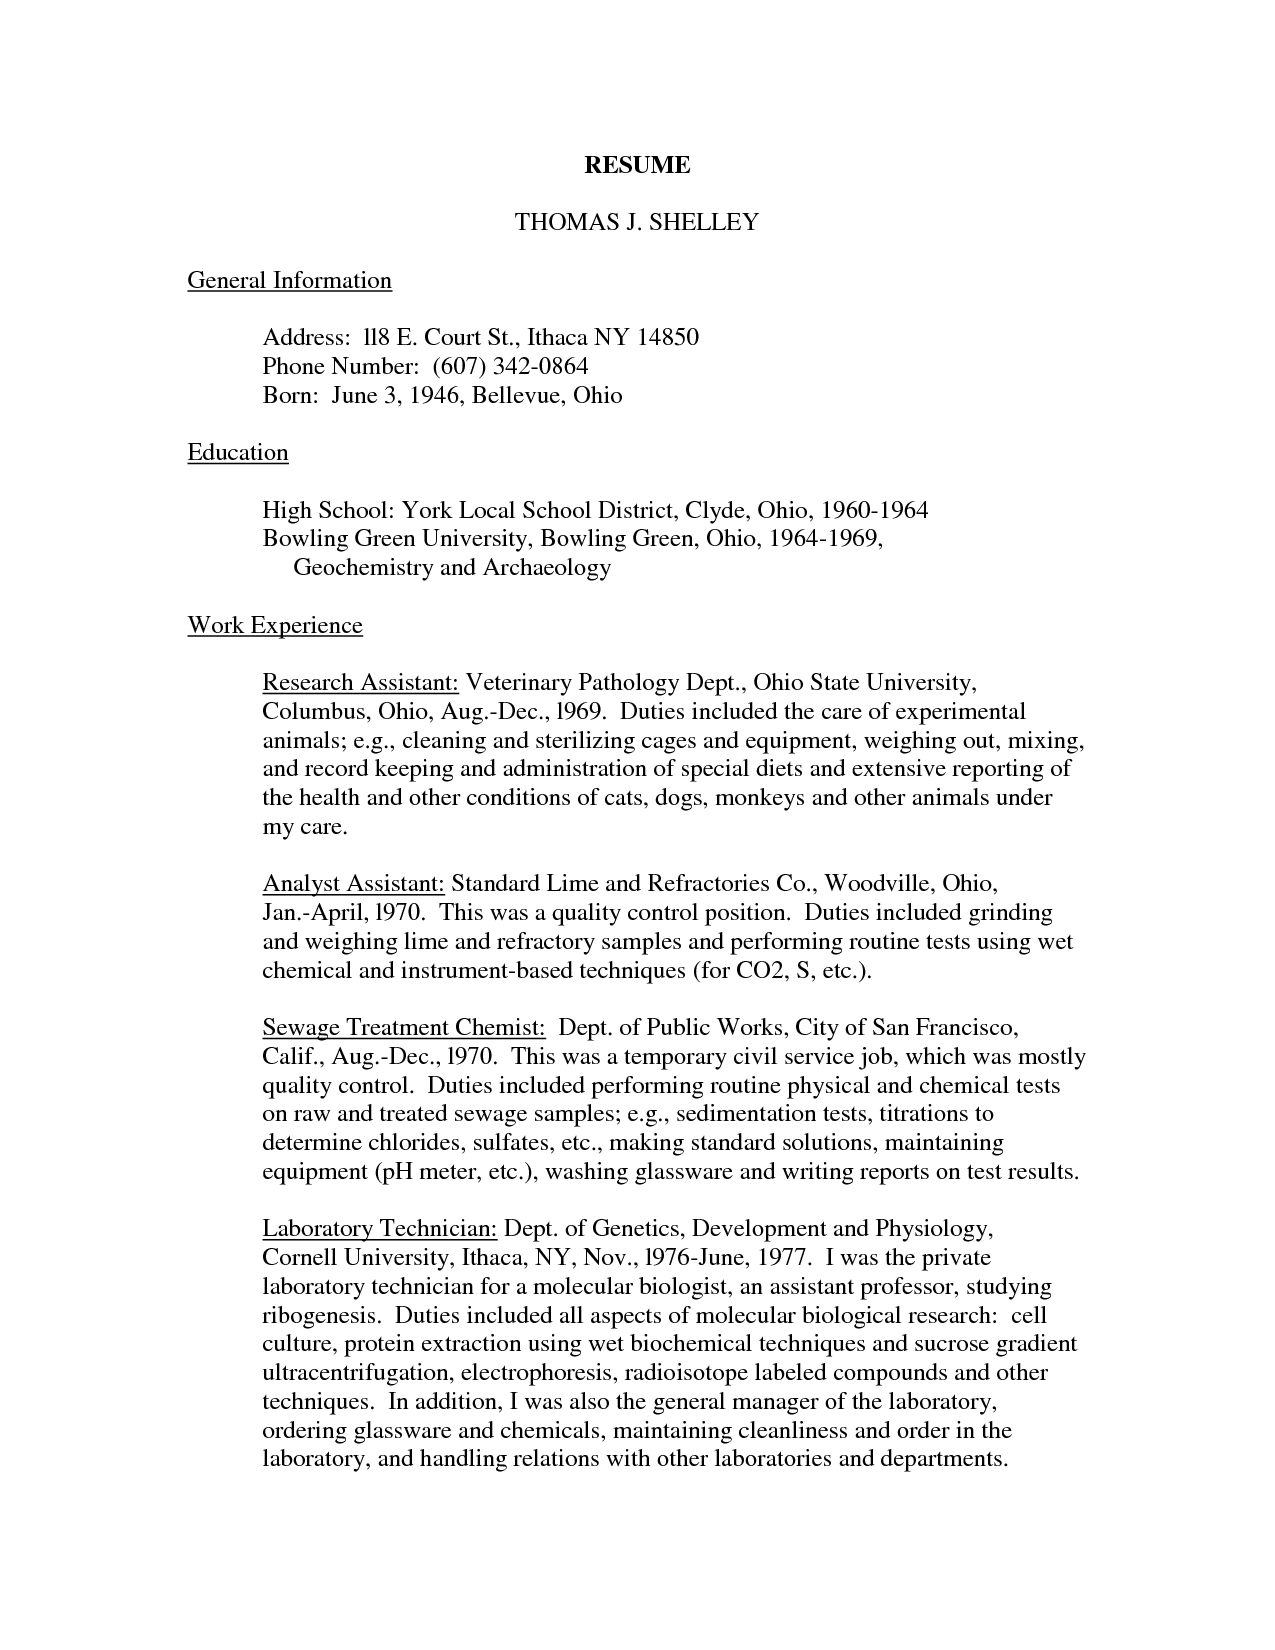 Related Post College Admission Essay Veterinary Technician Resume  Veterinary Technician Resume